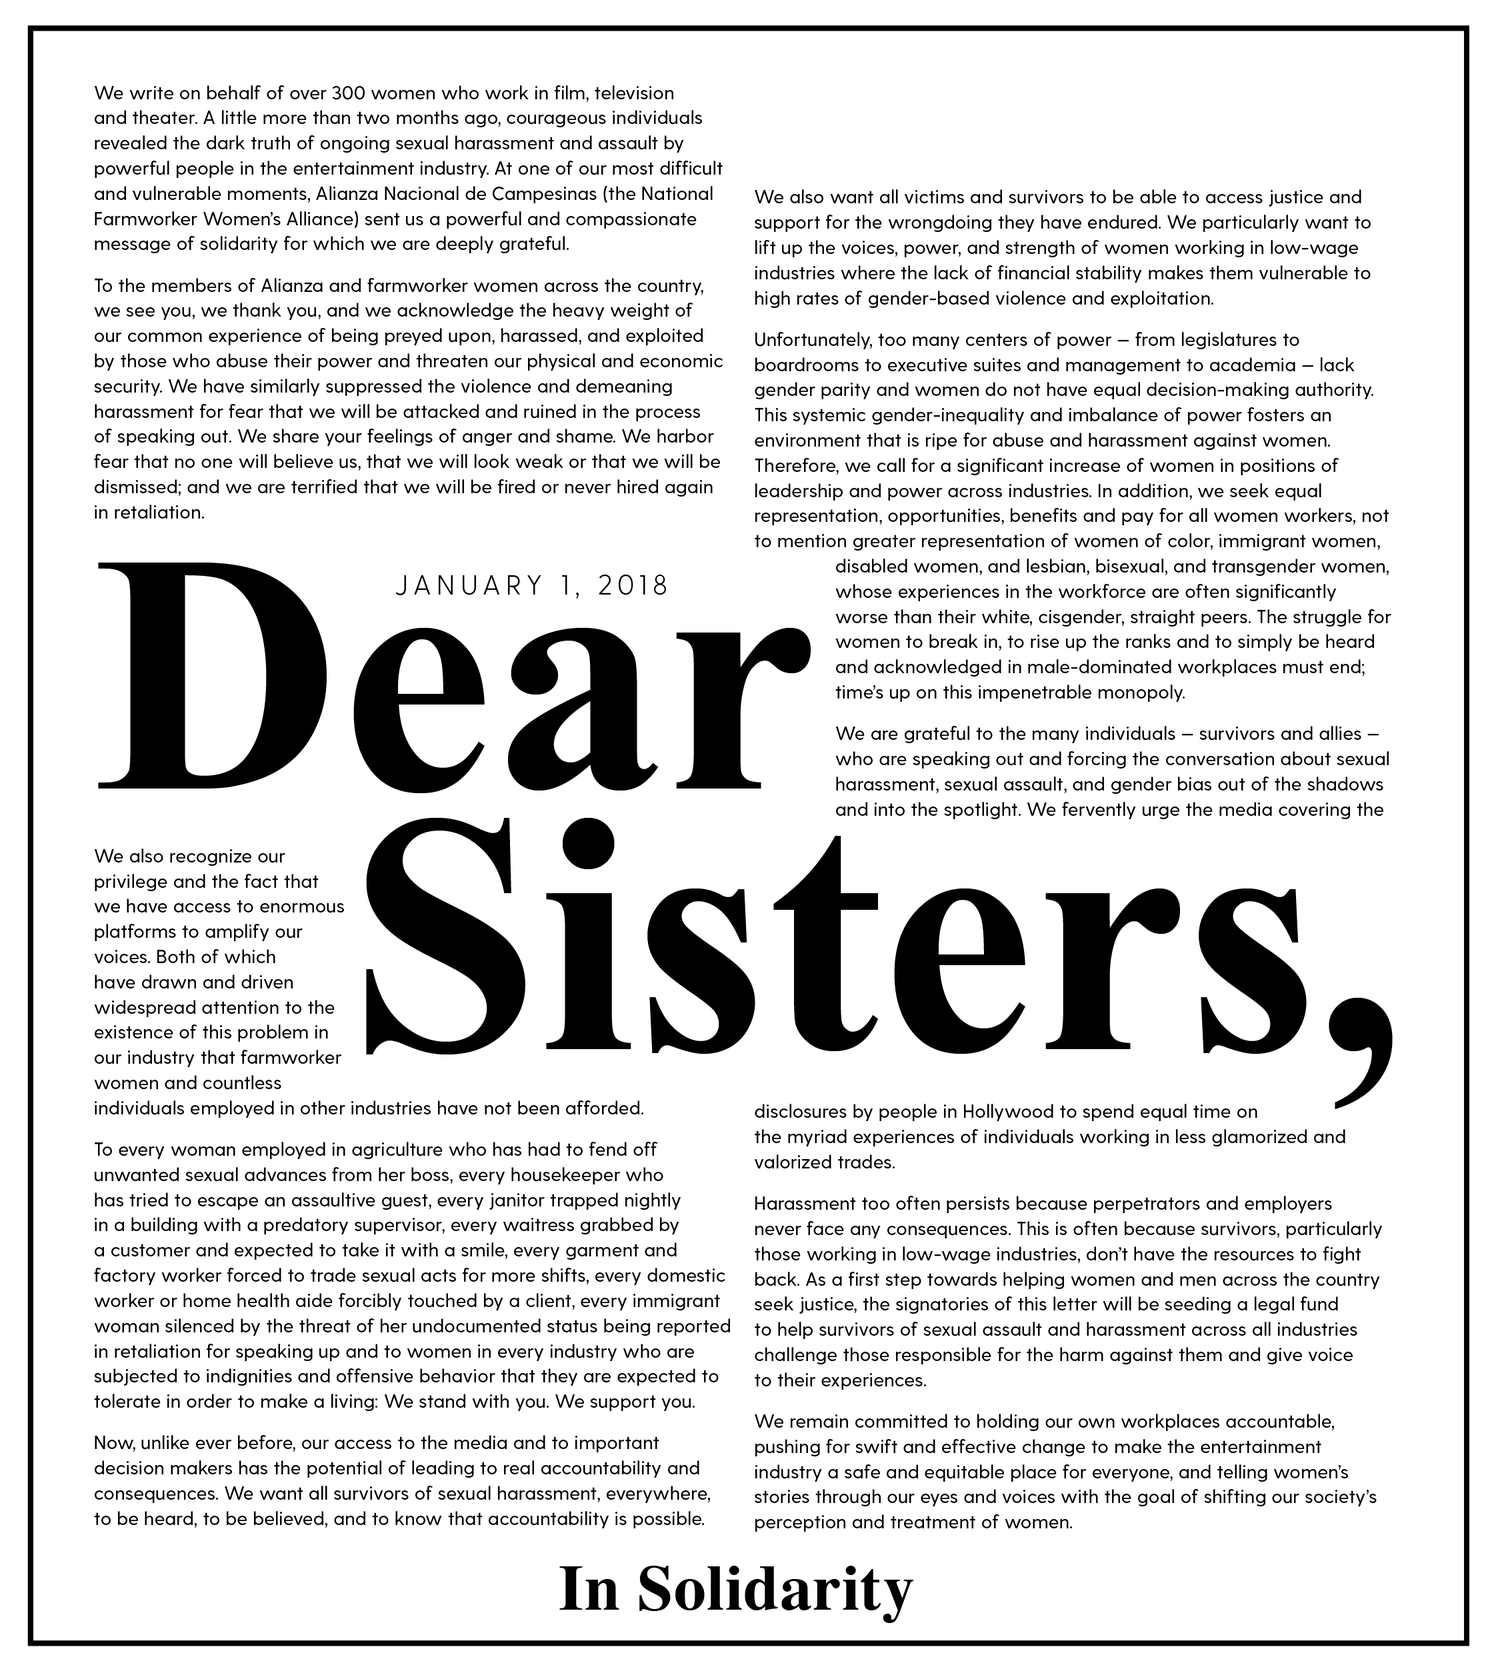 Time's Up - Letter of Solidarity